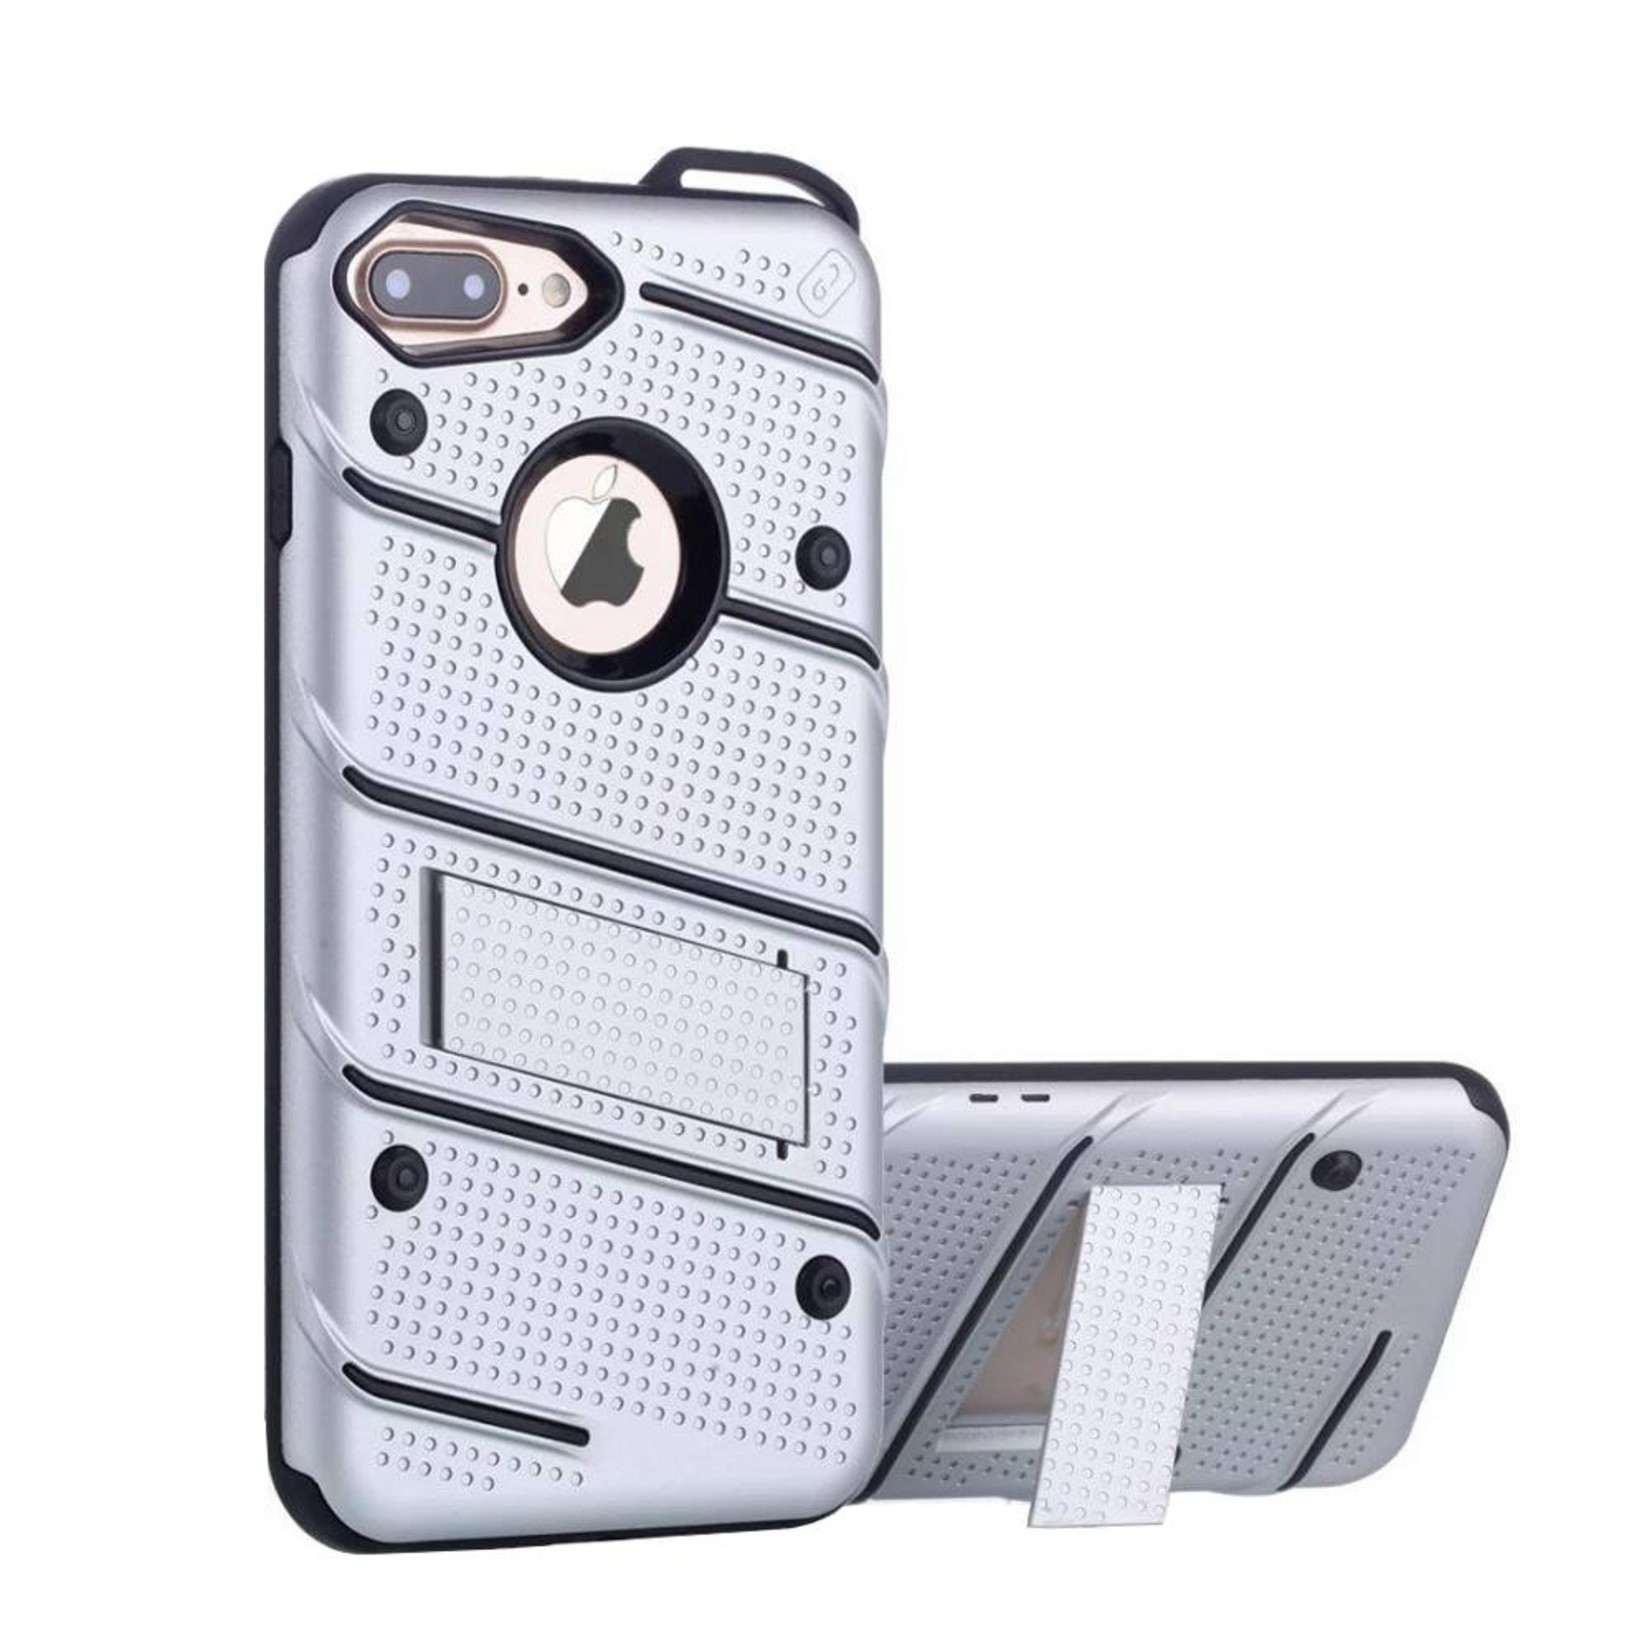 Colorfone Hoesje Armour Stand iPhone 7 Plus Zilver